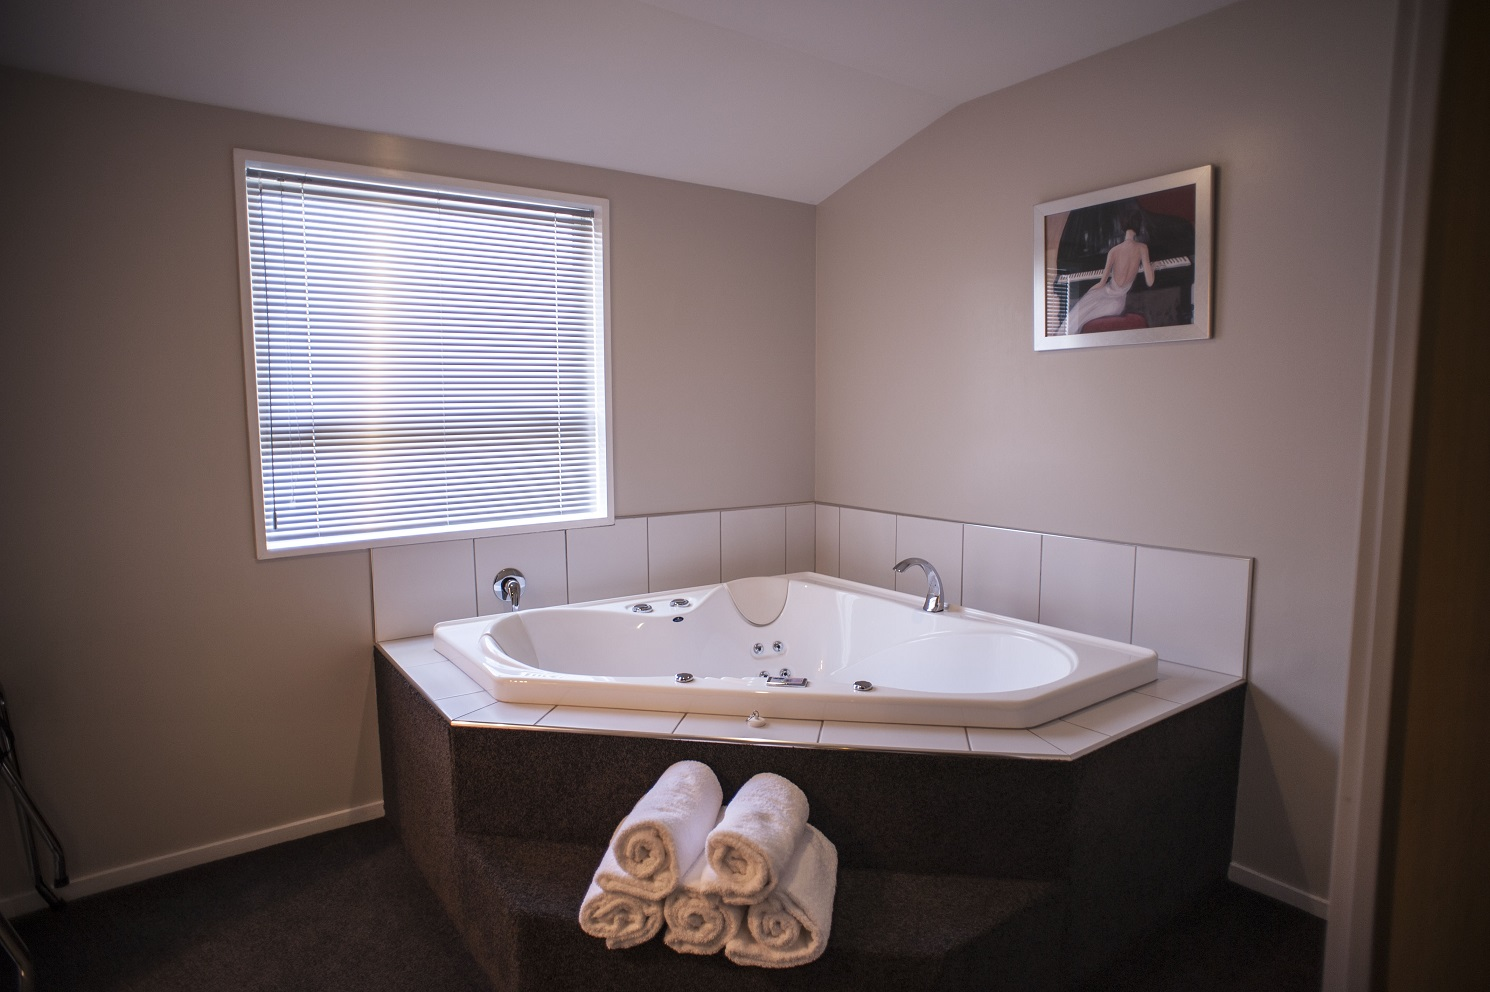 Spa bathroom suites - Executive Spa Suite 2 Jpg